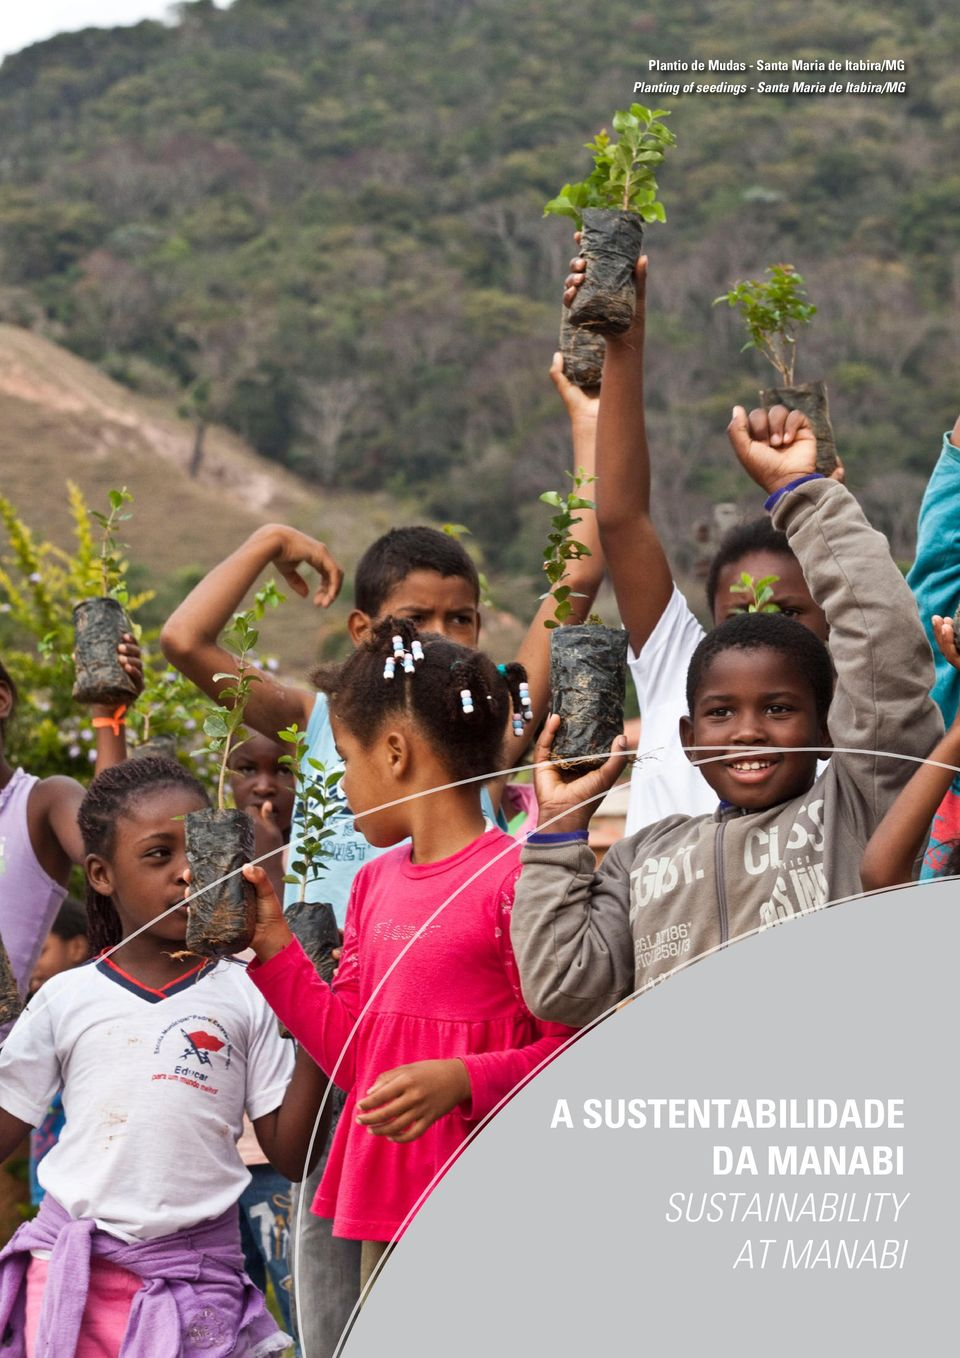 a sustentabilidade da manabi SUSTAINABILITY AT